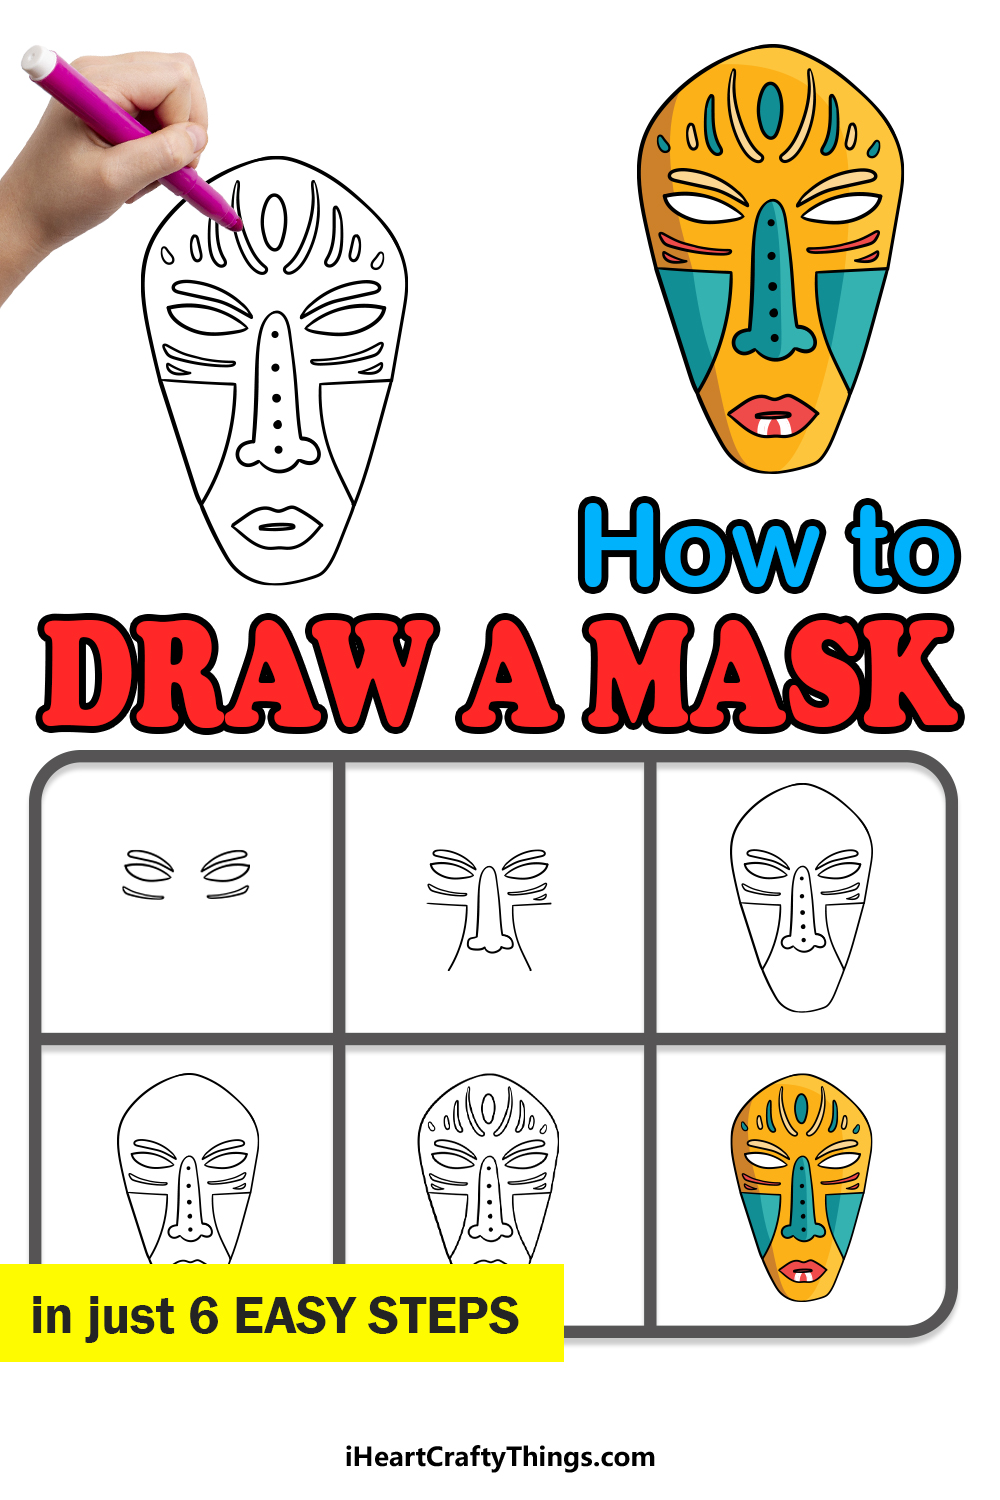 how to draw a mask in 6 easy steps